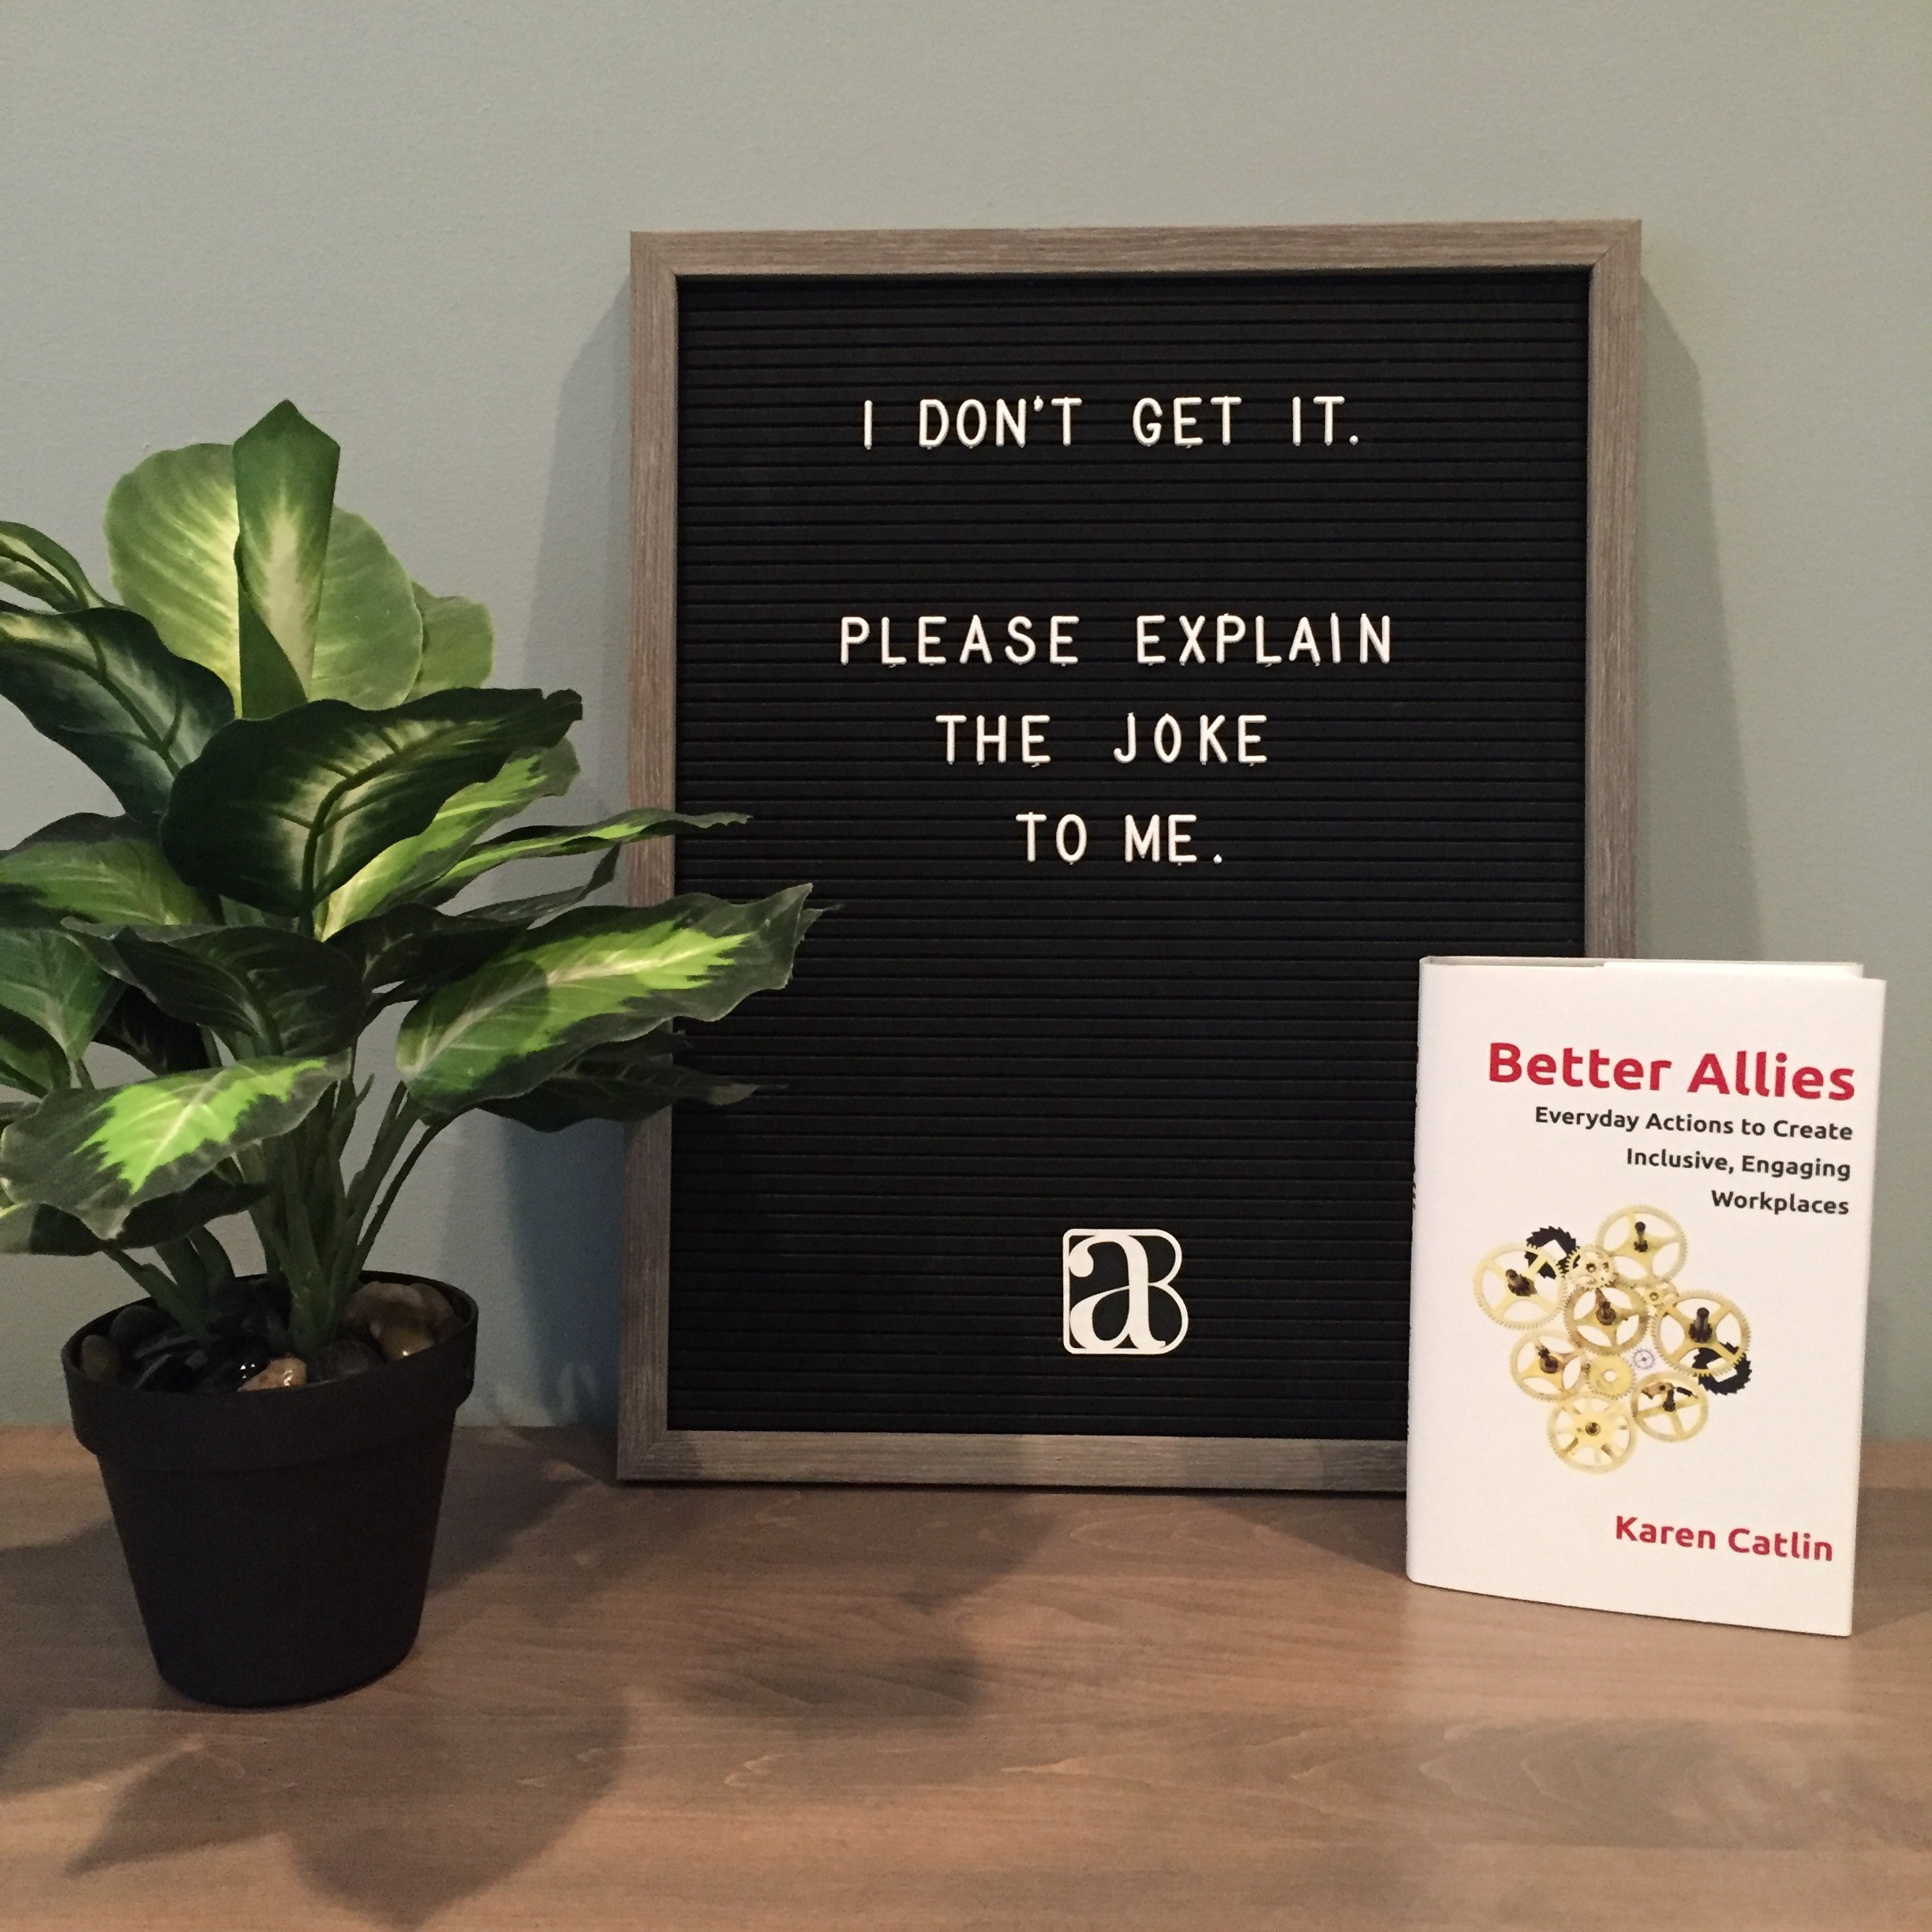 message board with I don't get it. Please explain the joke to me. With a copy of the Better Allies book by Karen Catlin